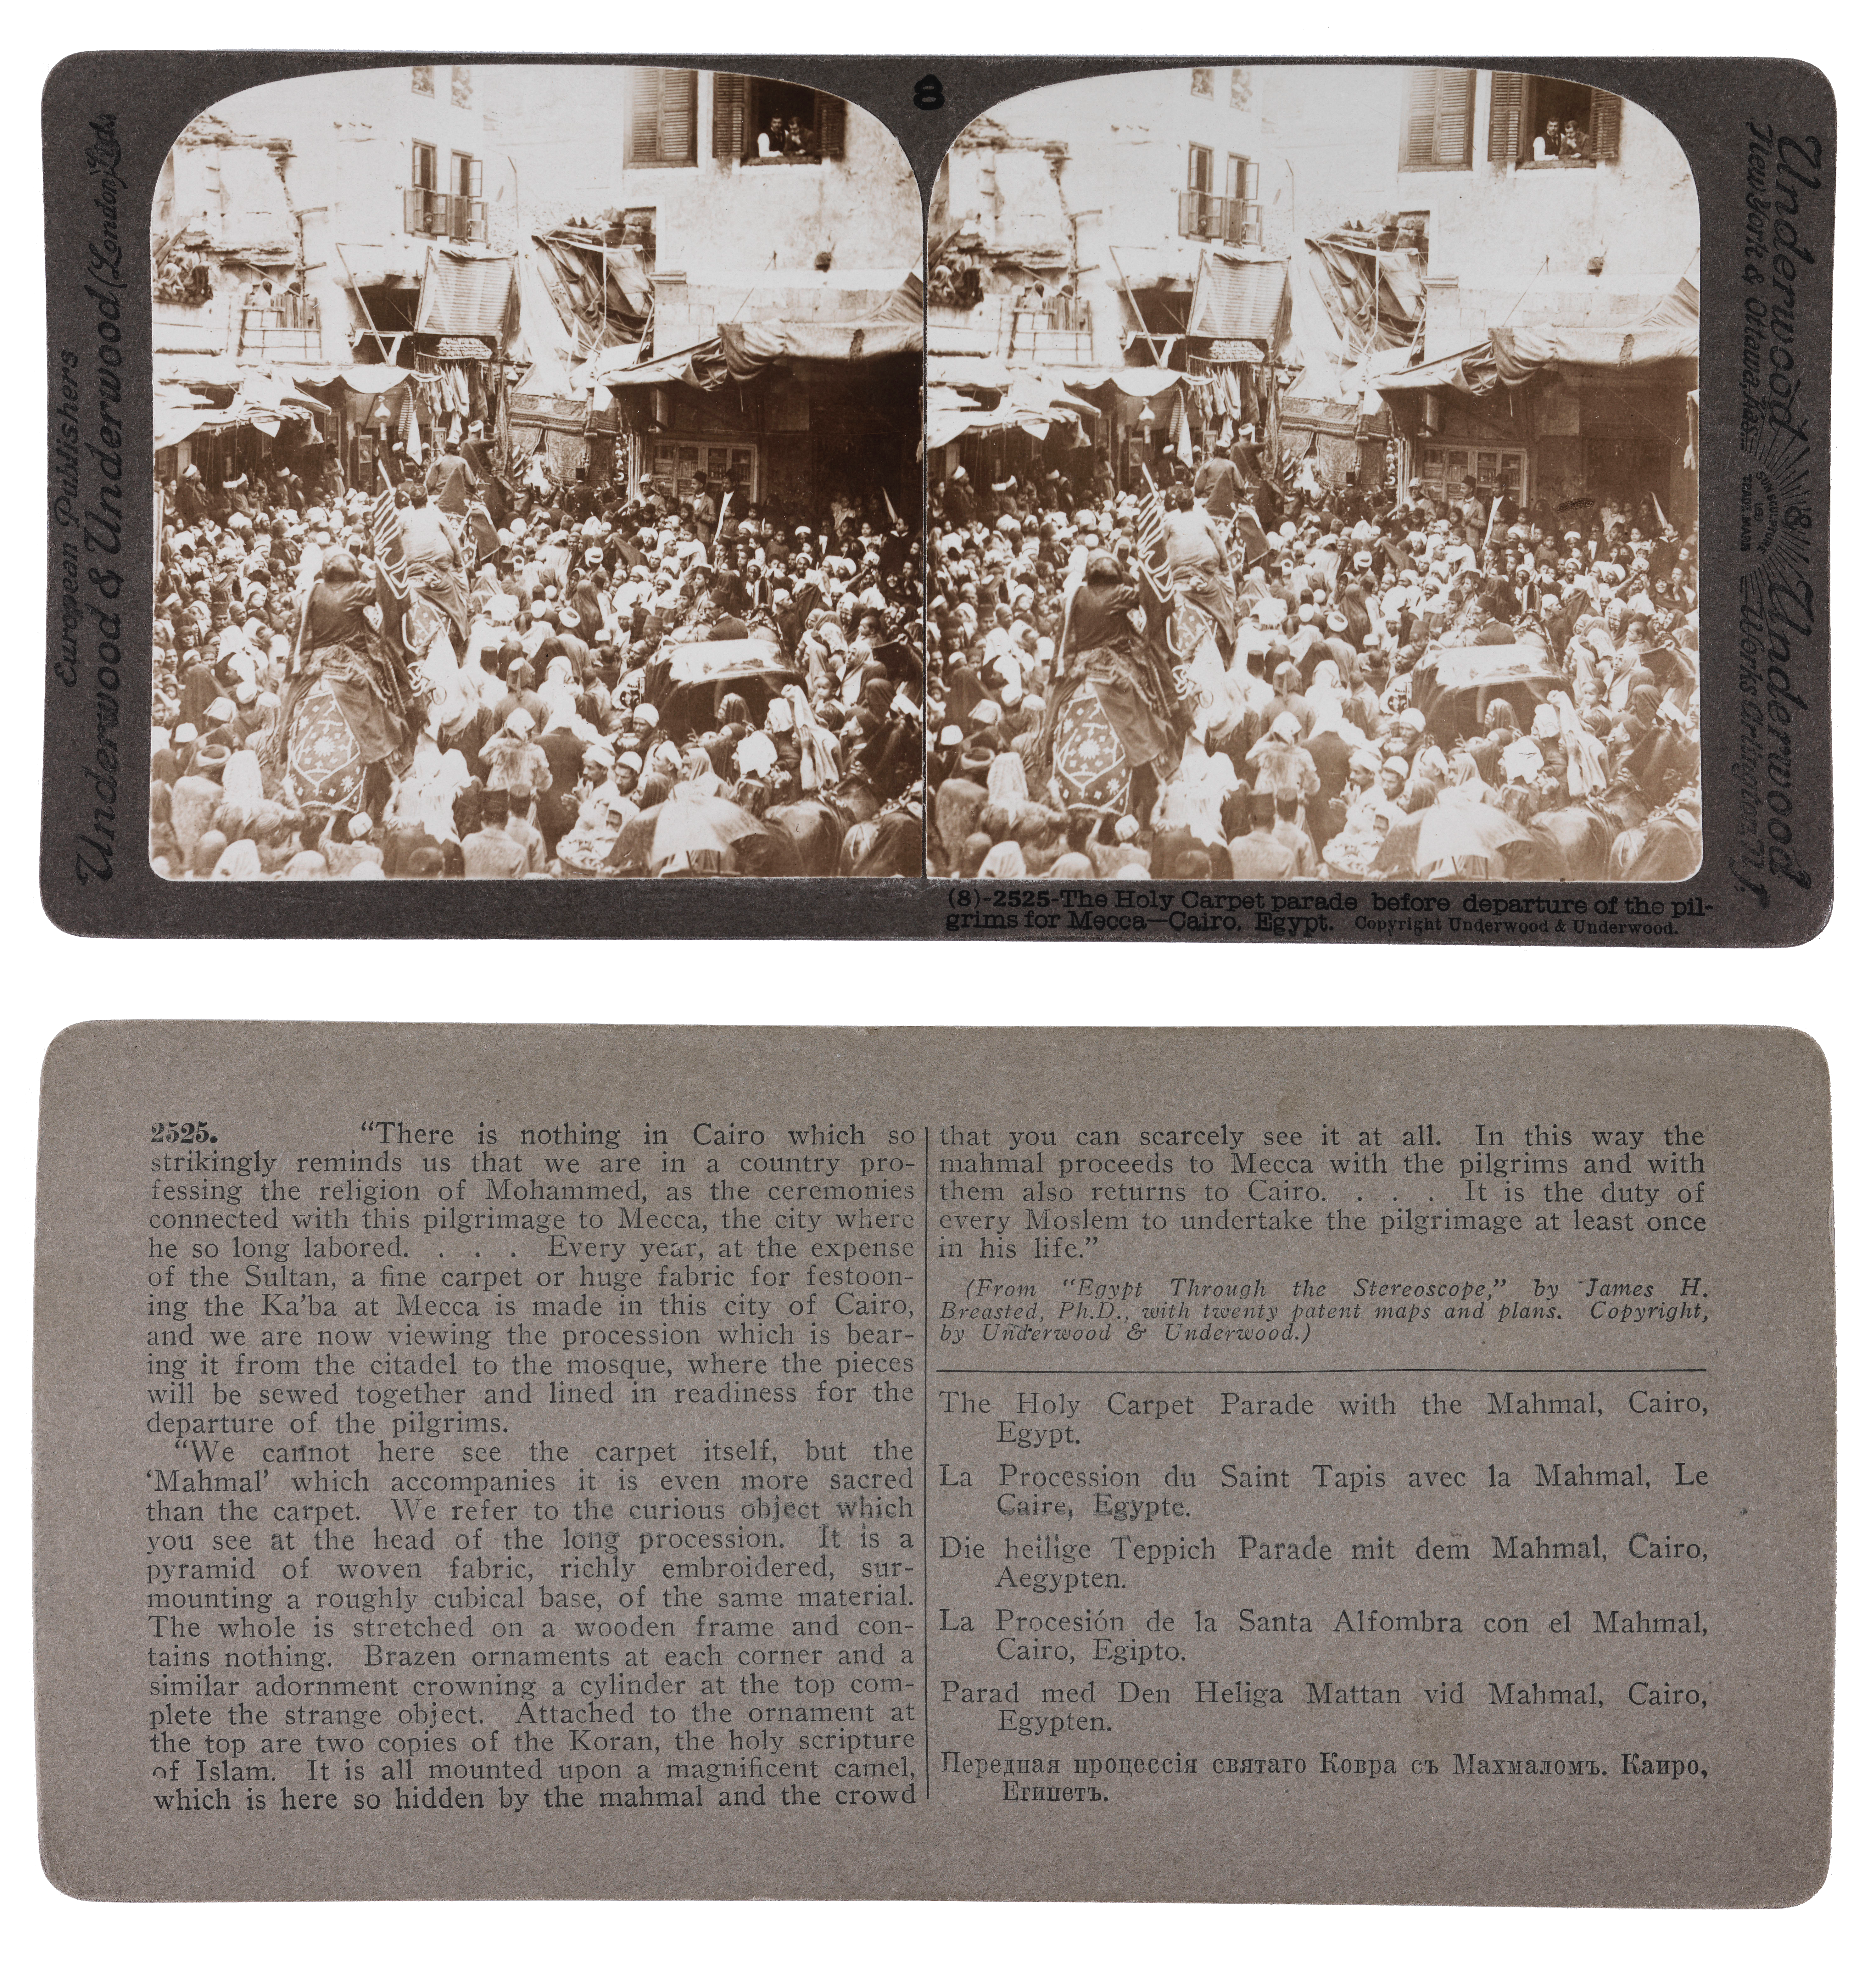 Streoscopic view: The Holy Carpet Parade before the departure of the pilgrims for Mecca